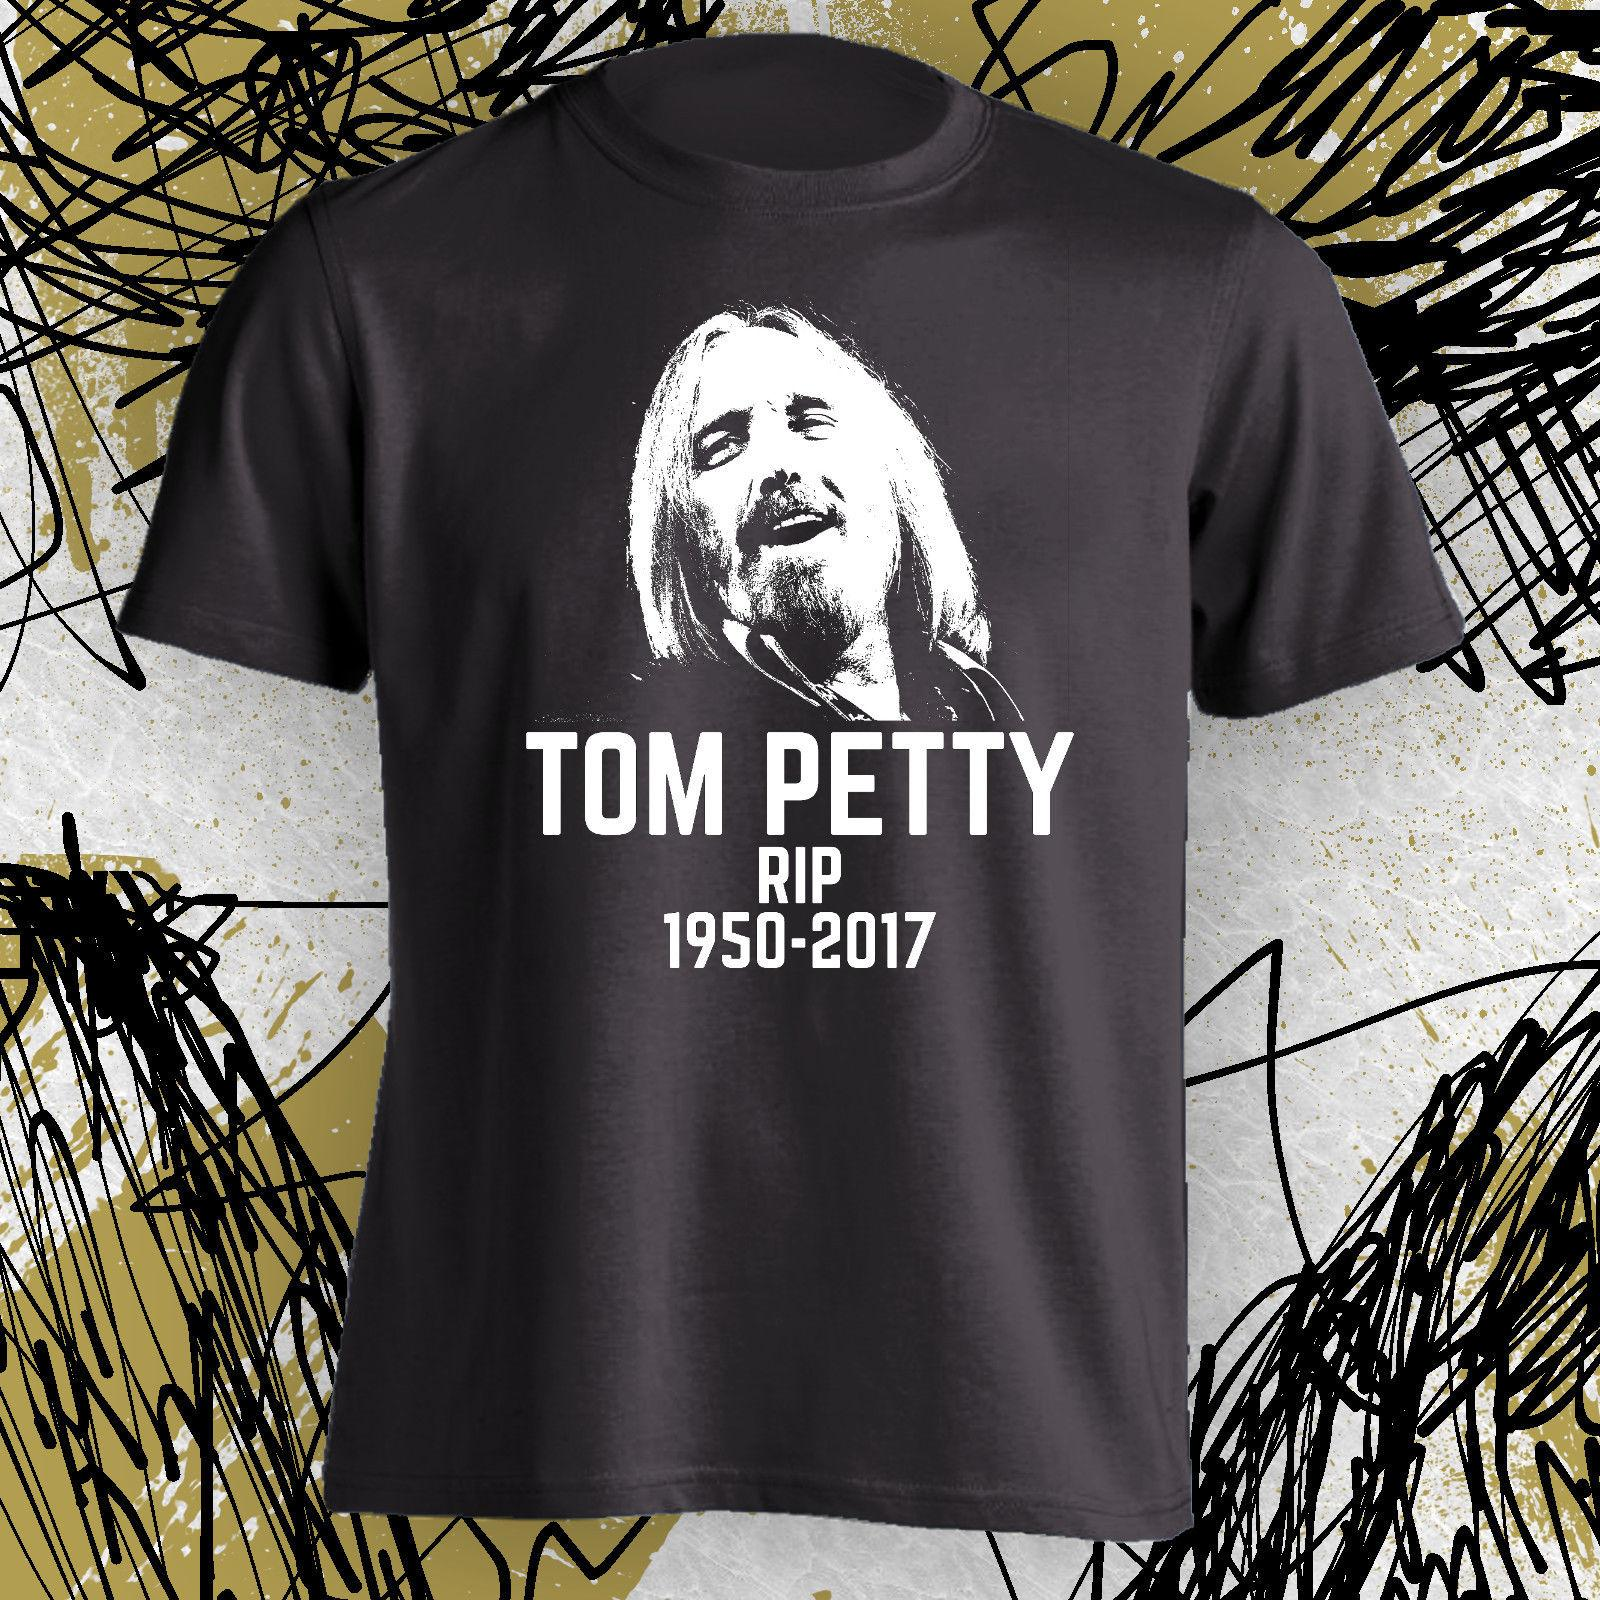 In Memory T Shirt Designs | Rip Tom Petty In Memory Of A Legend T Shirt Memorial Adult Sizes S